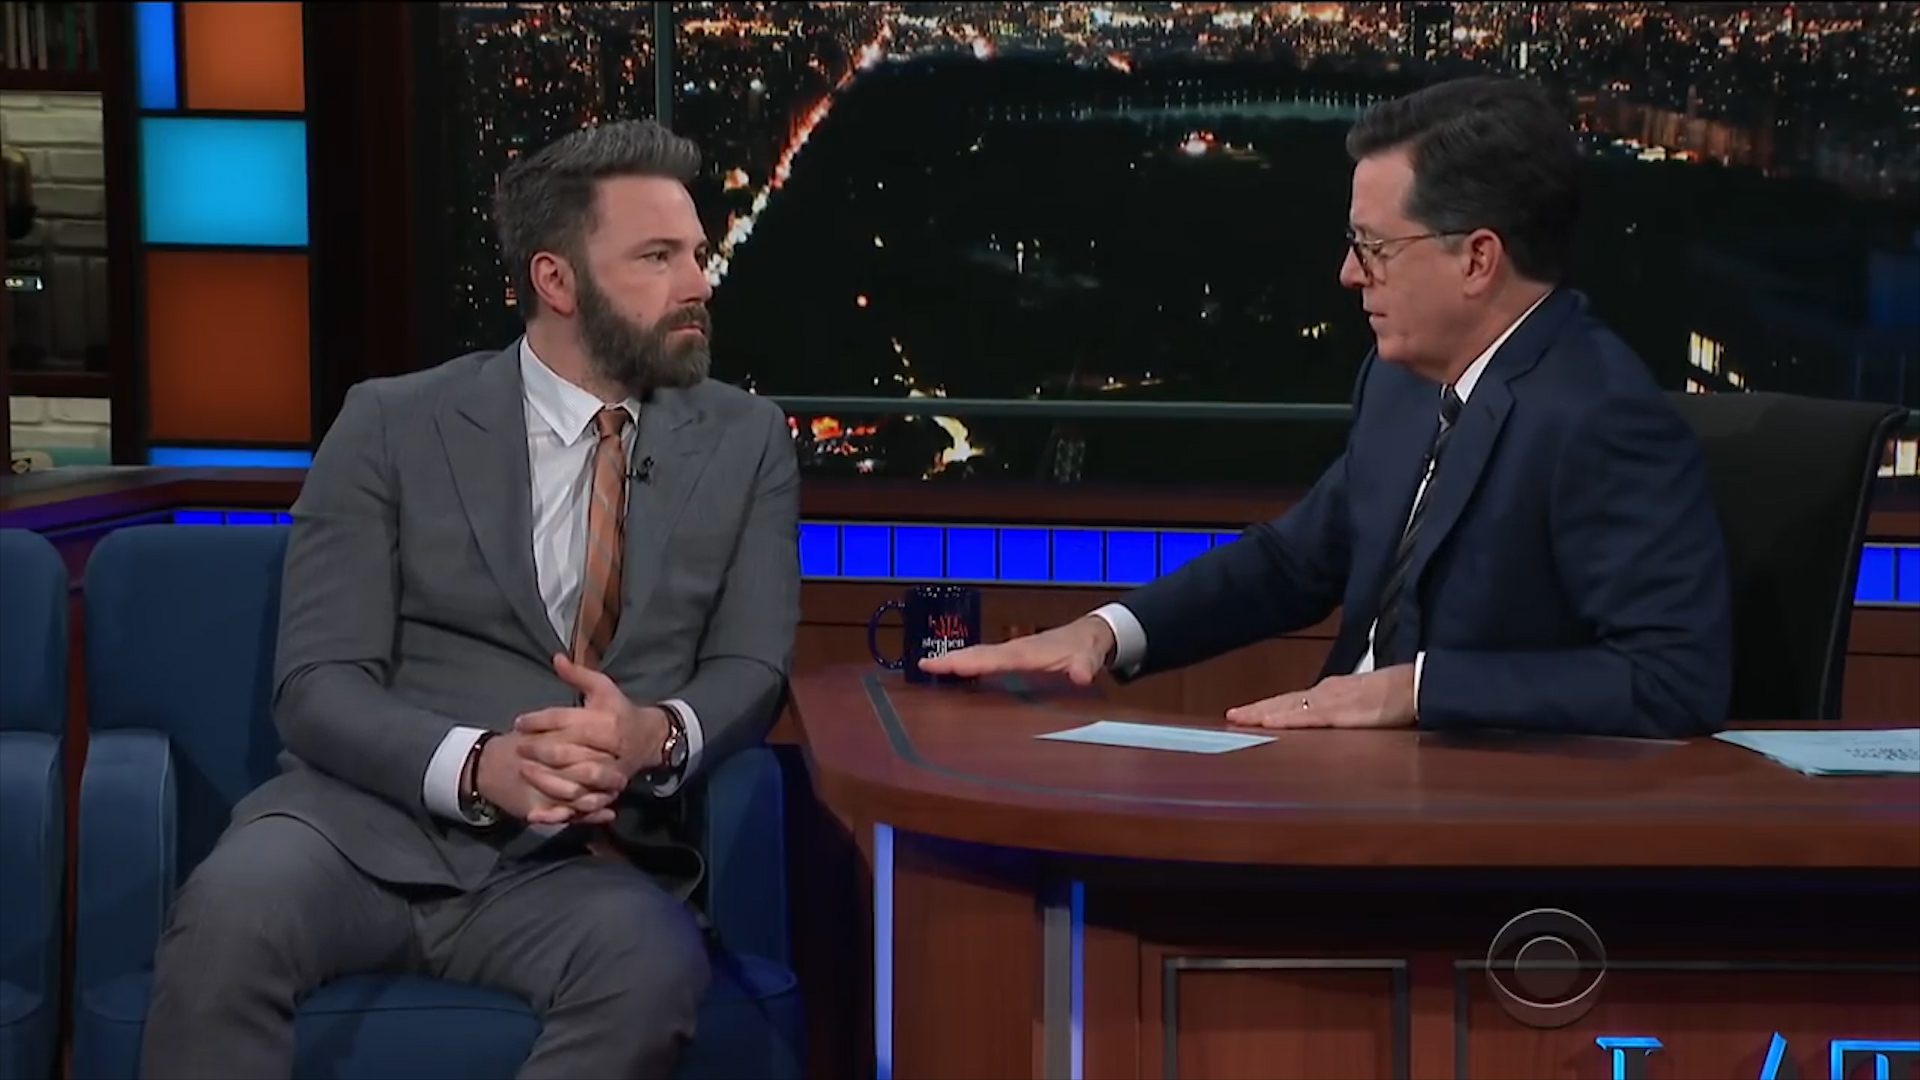 Ben Affleck grilled by Stephen Colbert over allegations of sexual misconduct